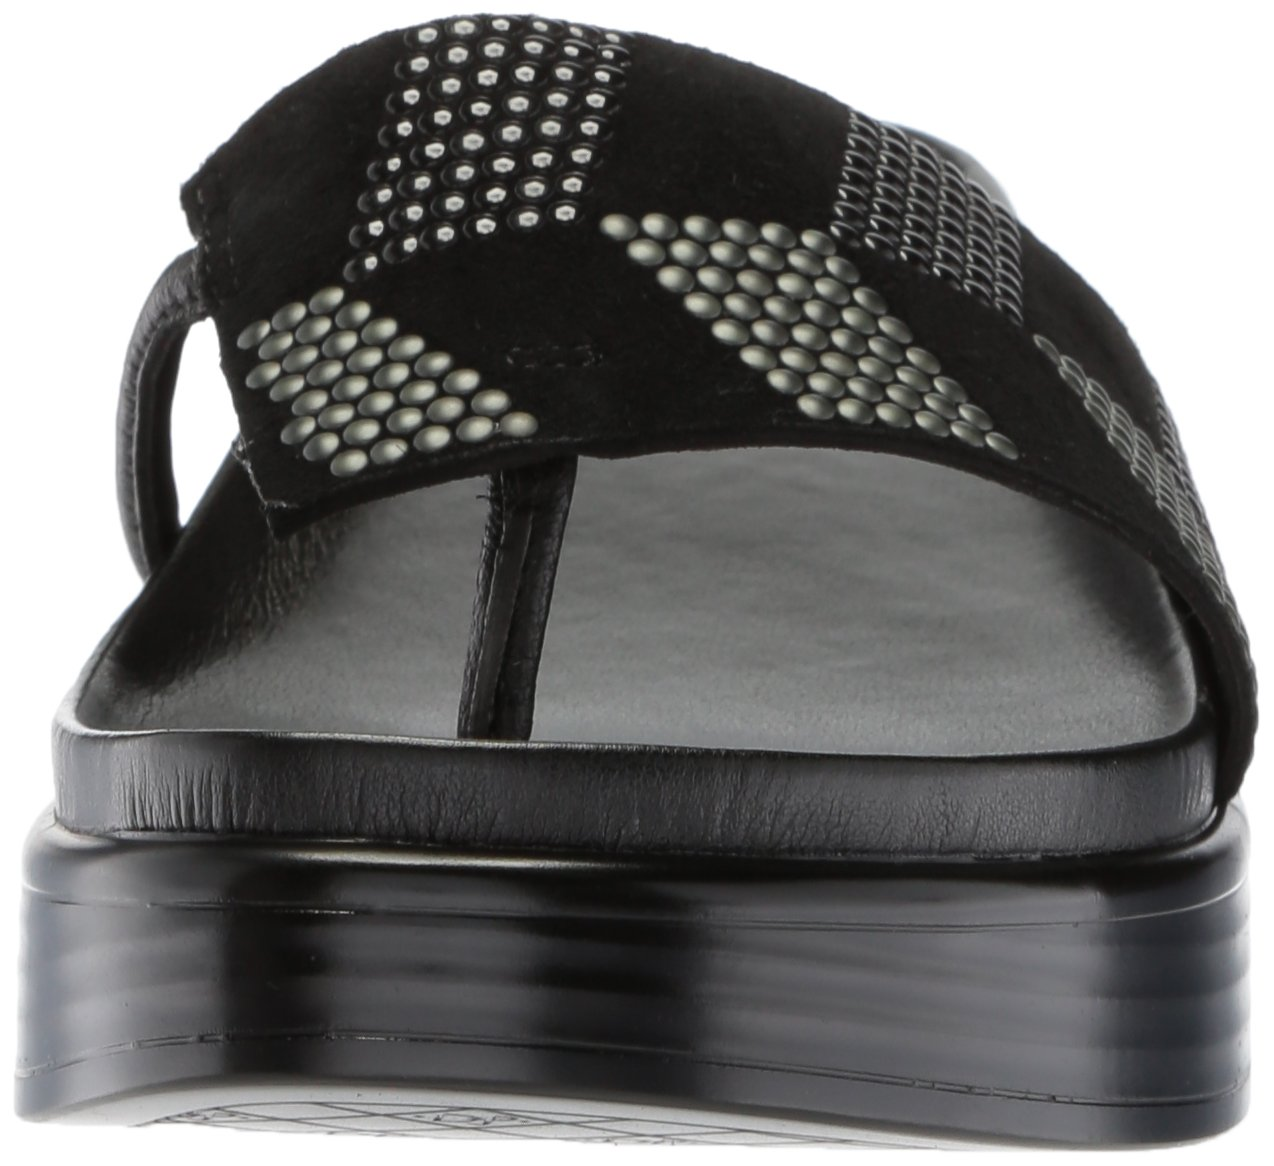 Donald J Pliner Women's FIFI19SP Slide Sandal B072KVPKXW 6 B(M) US|Black